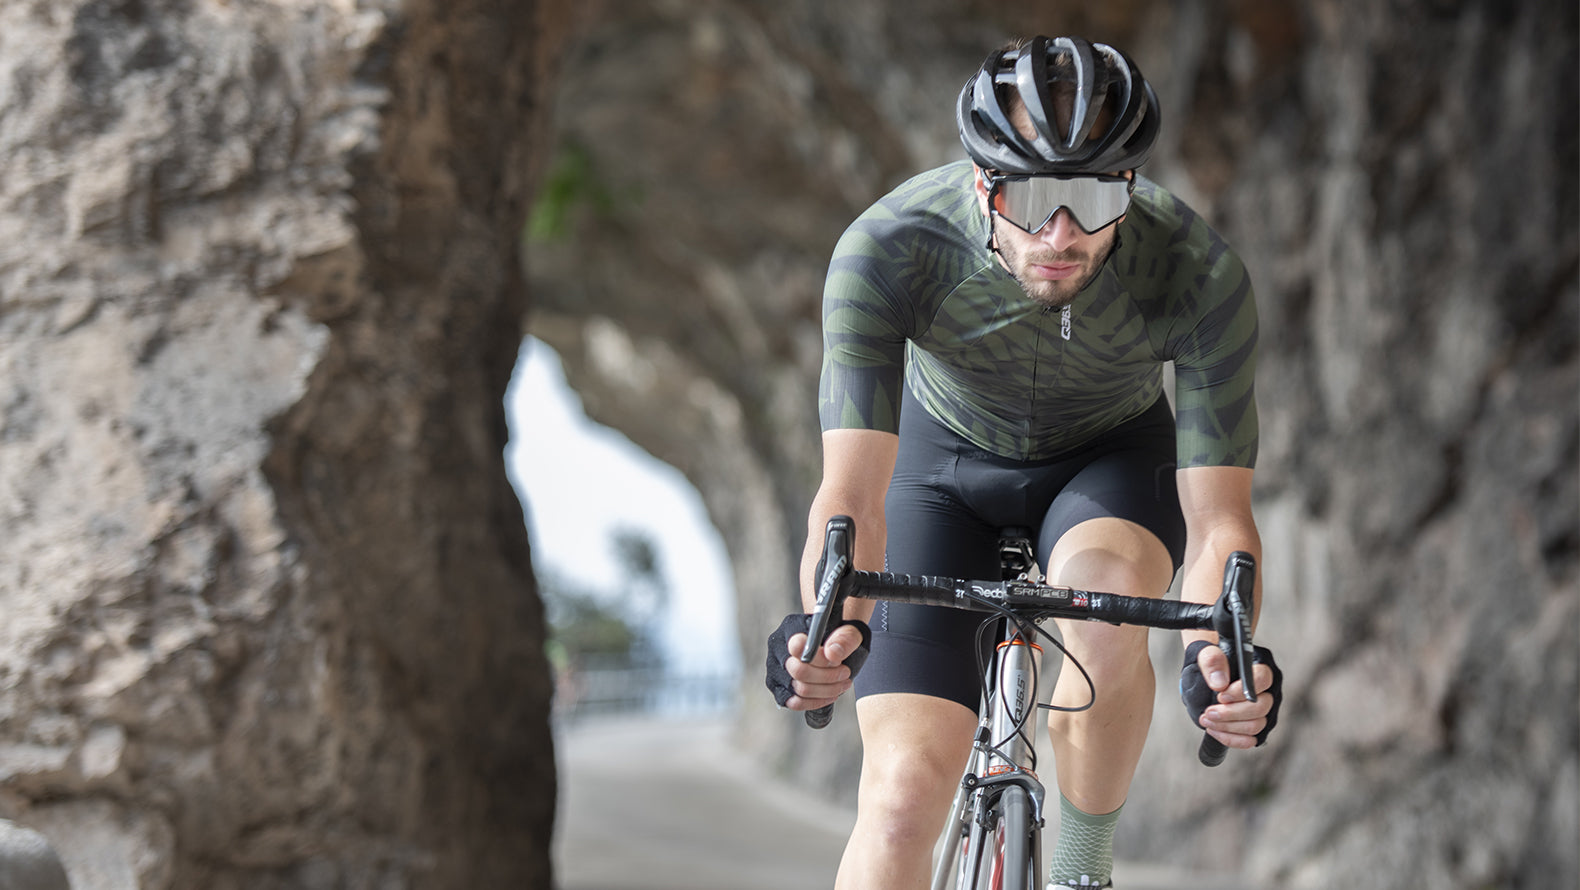 Q36.5 R2 Short Sleeve Cycling Jersey in Jungle for riding in warm weather conditions.